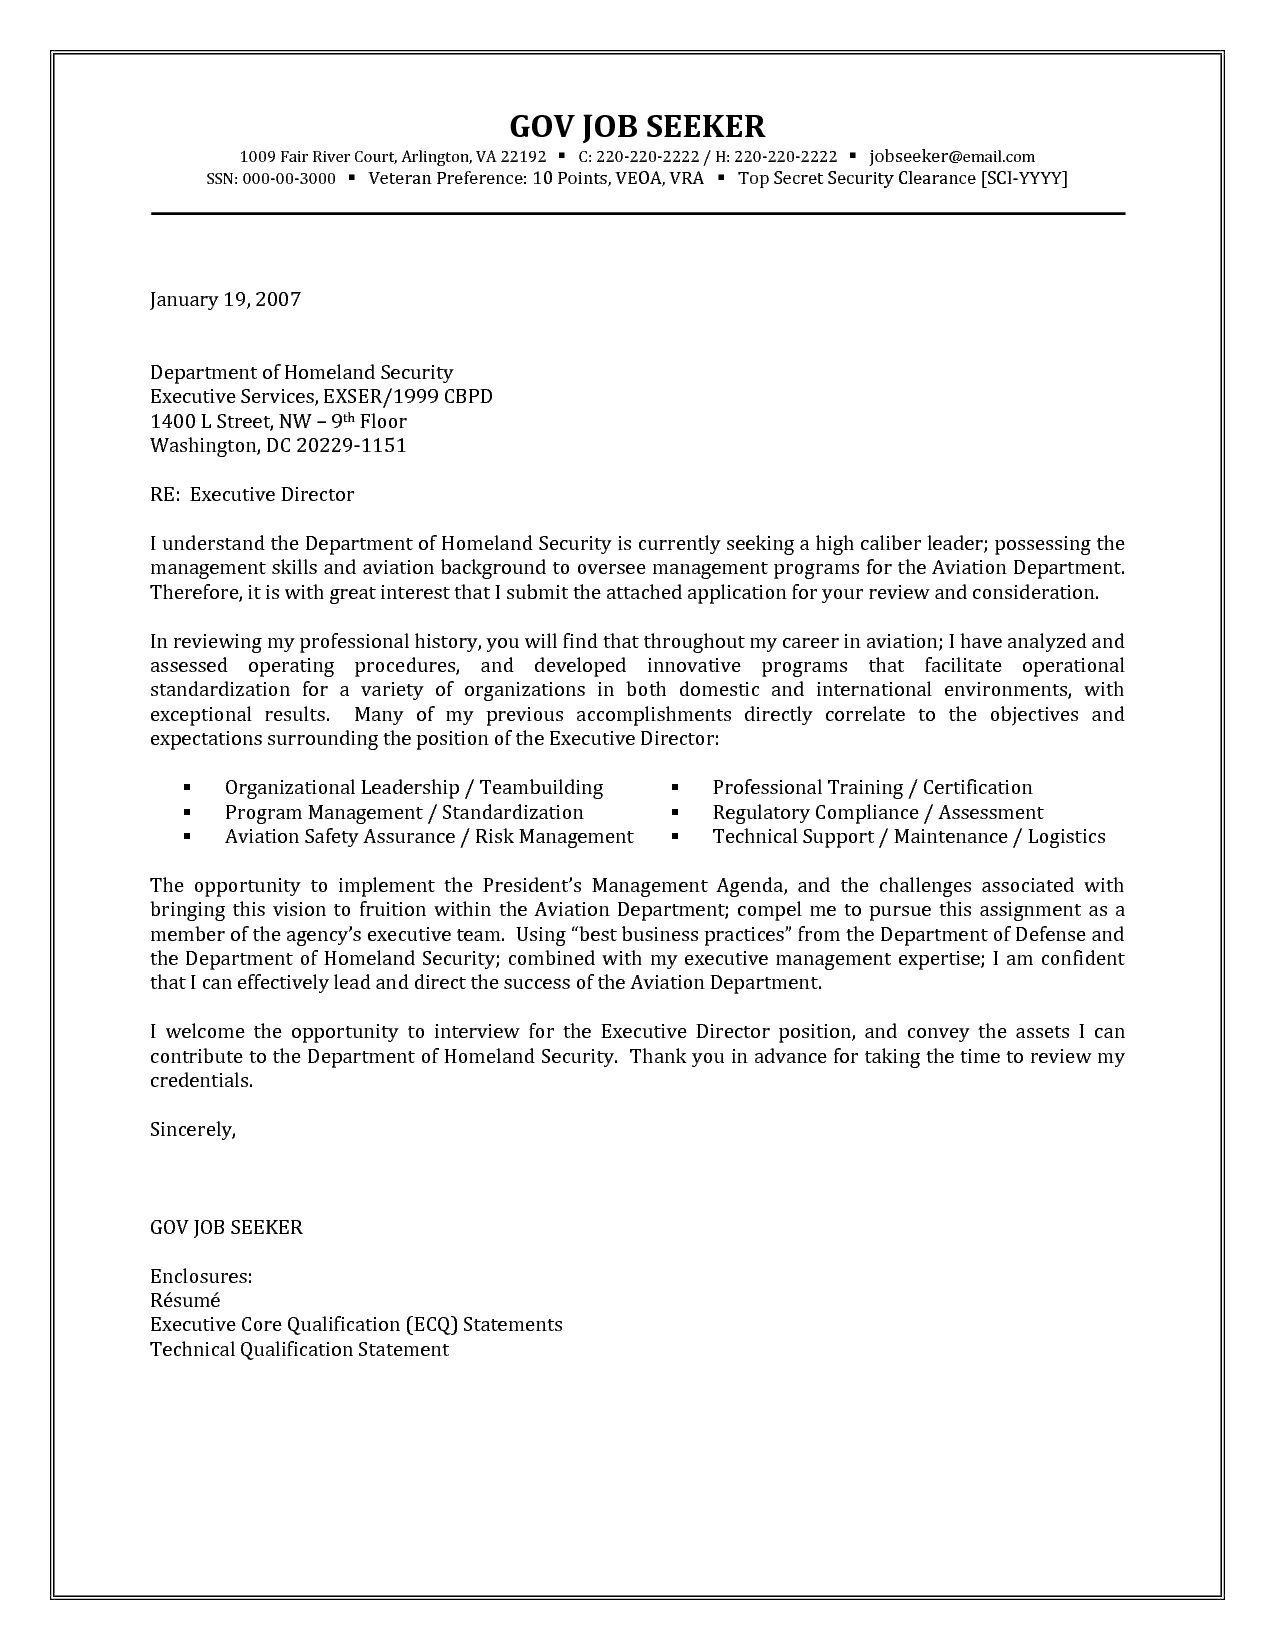 Government Resume Cover Letter Examples  HttpJobresumesample